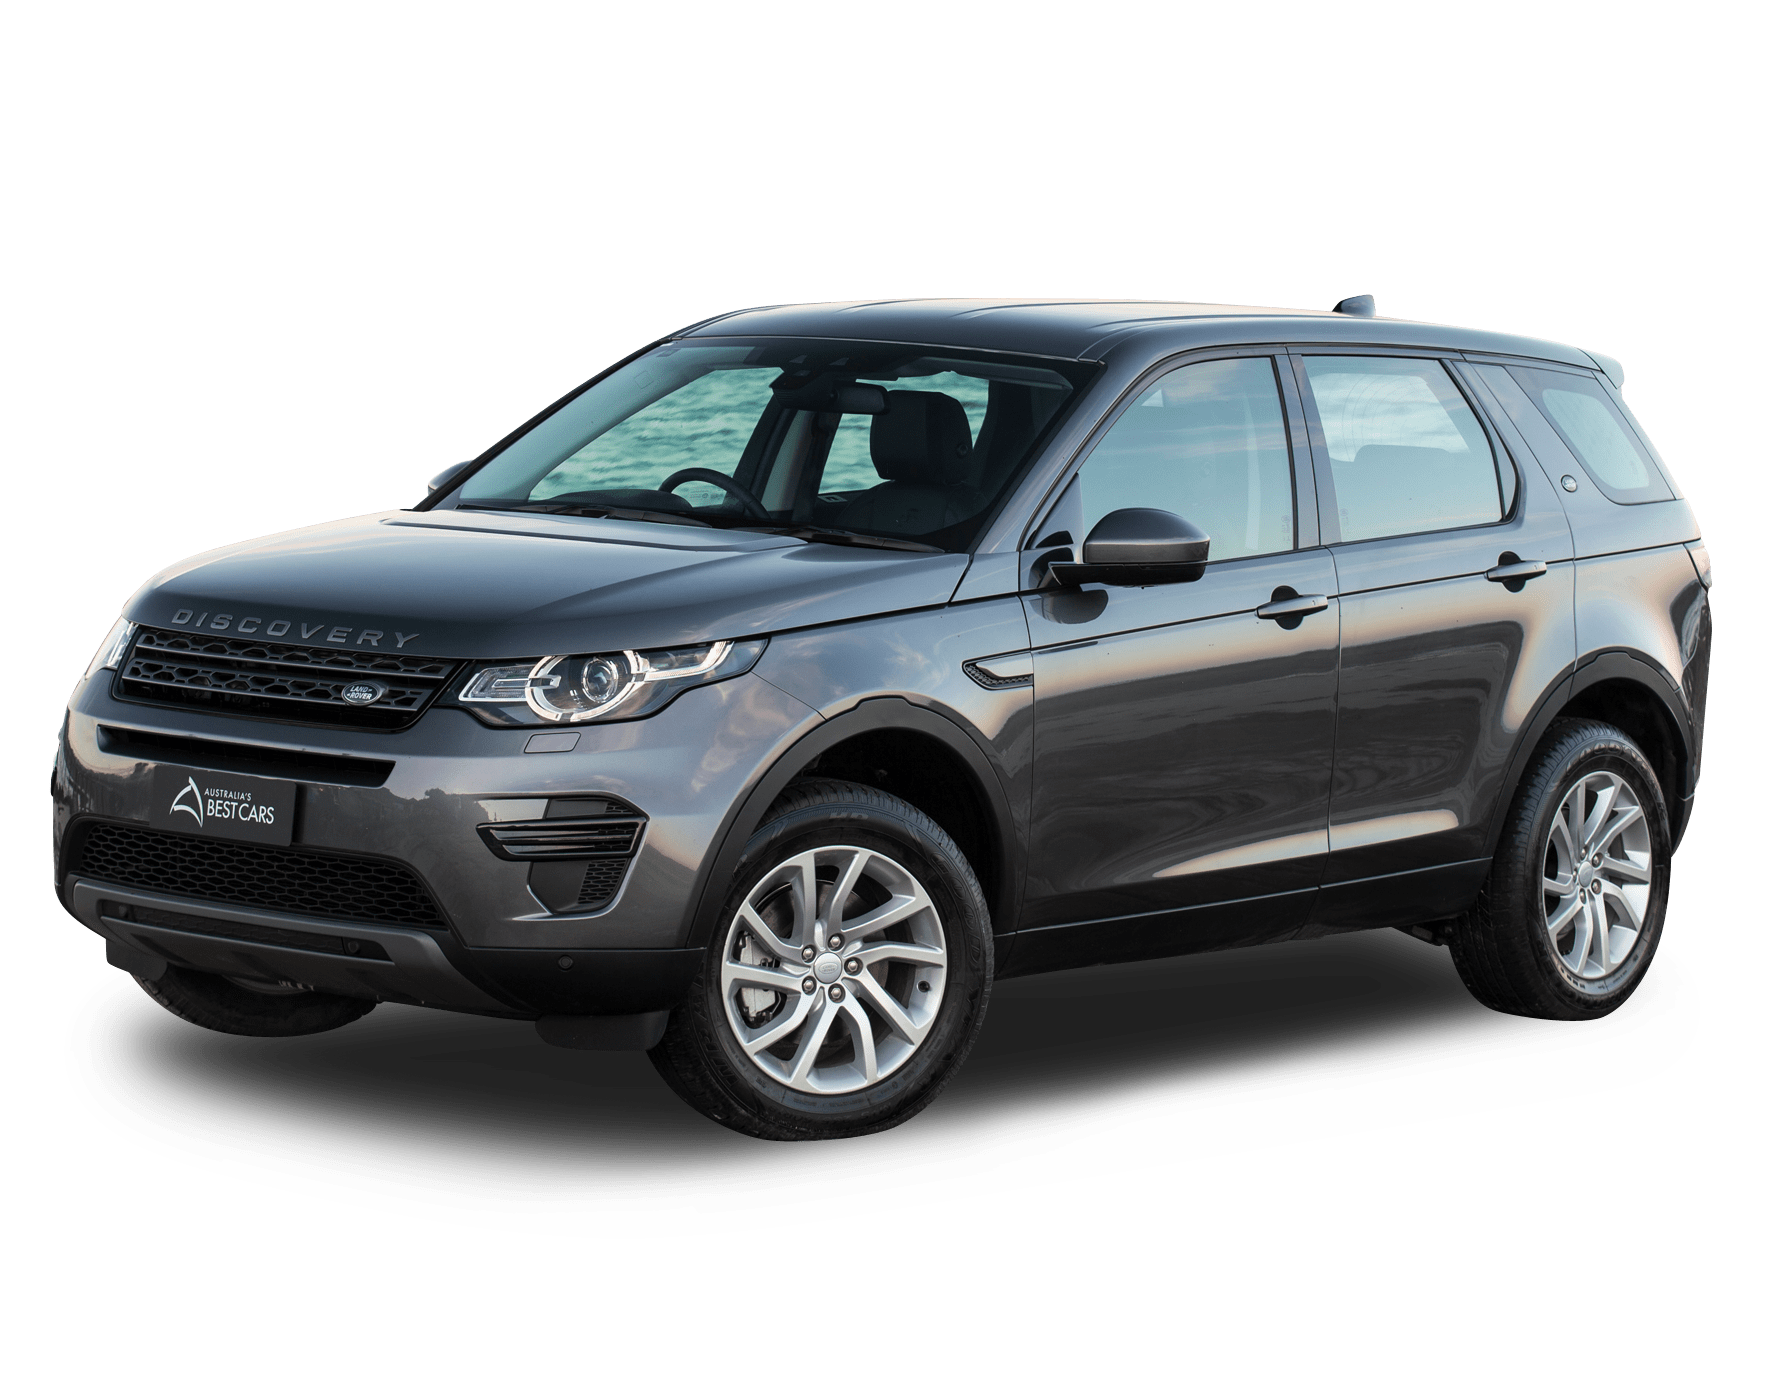 Range Rover Discovery Sport >> Land Rover Discovery Sport Review Price For Sale Colours